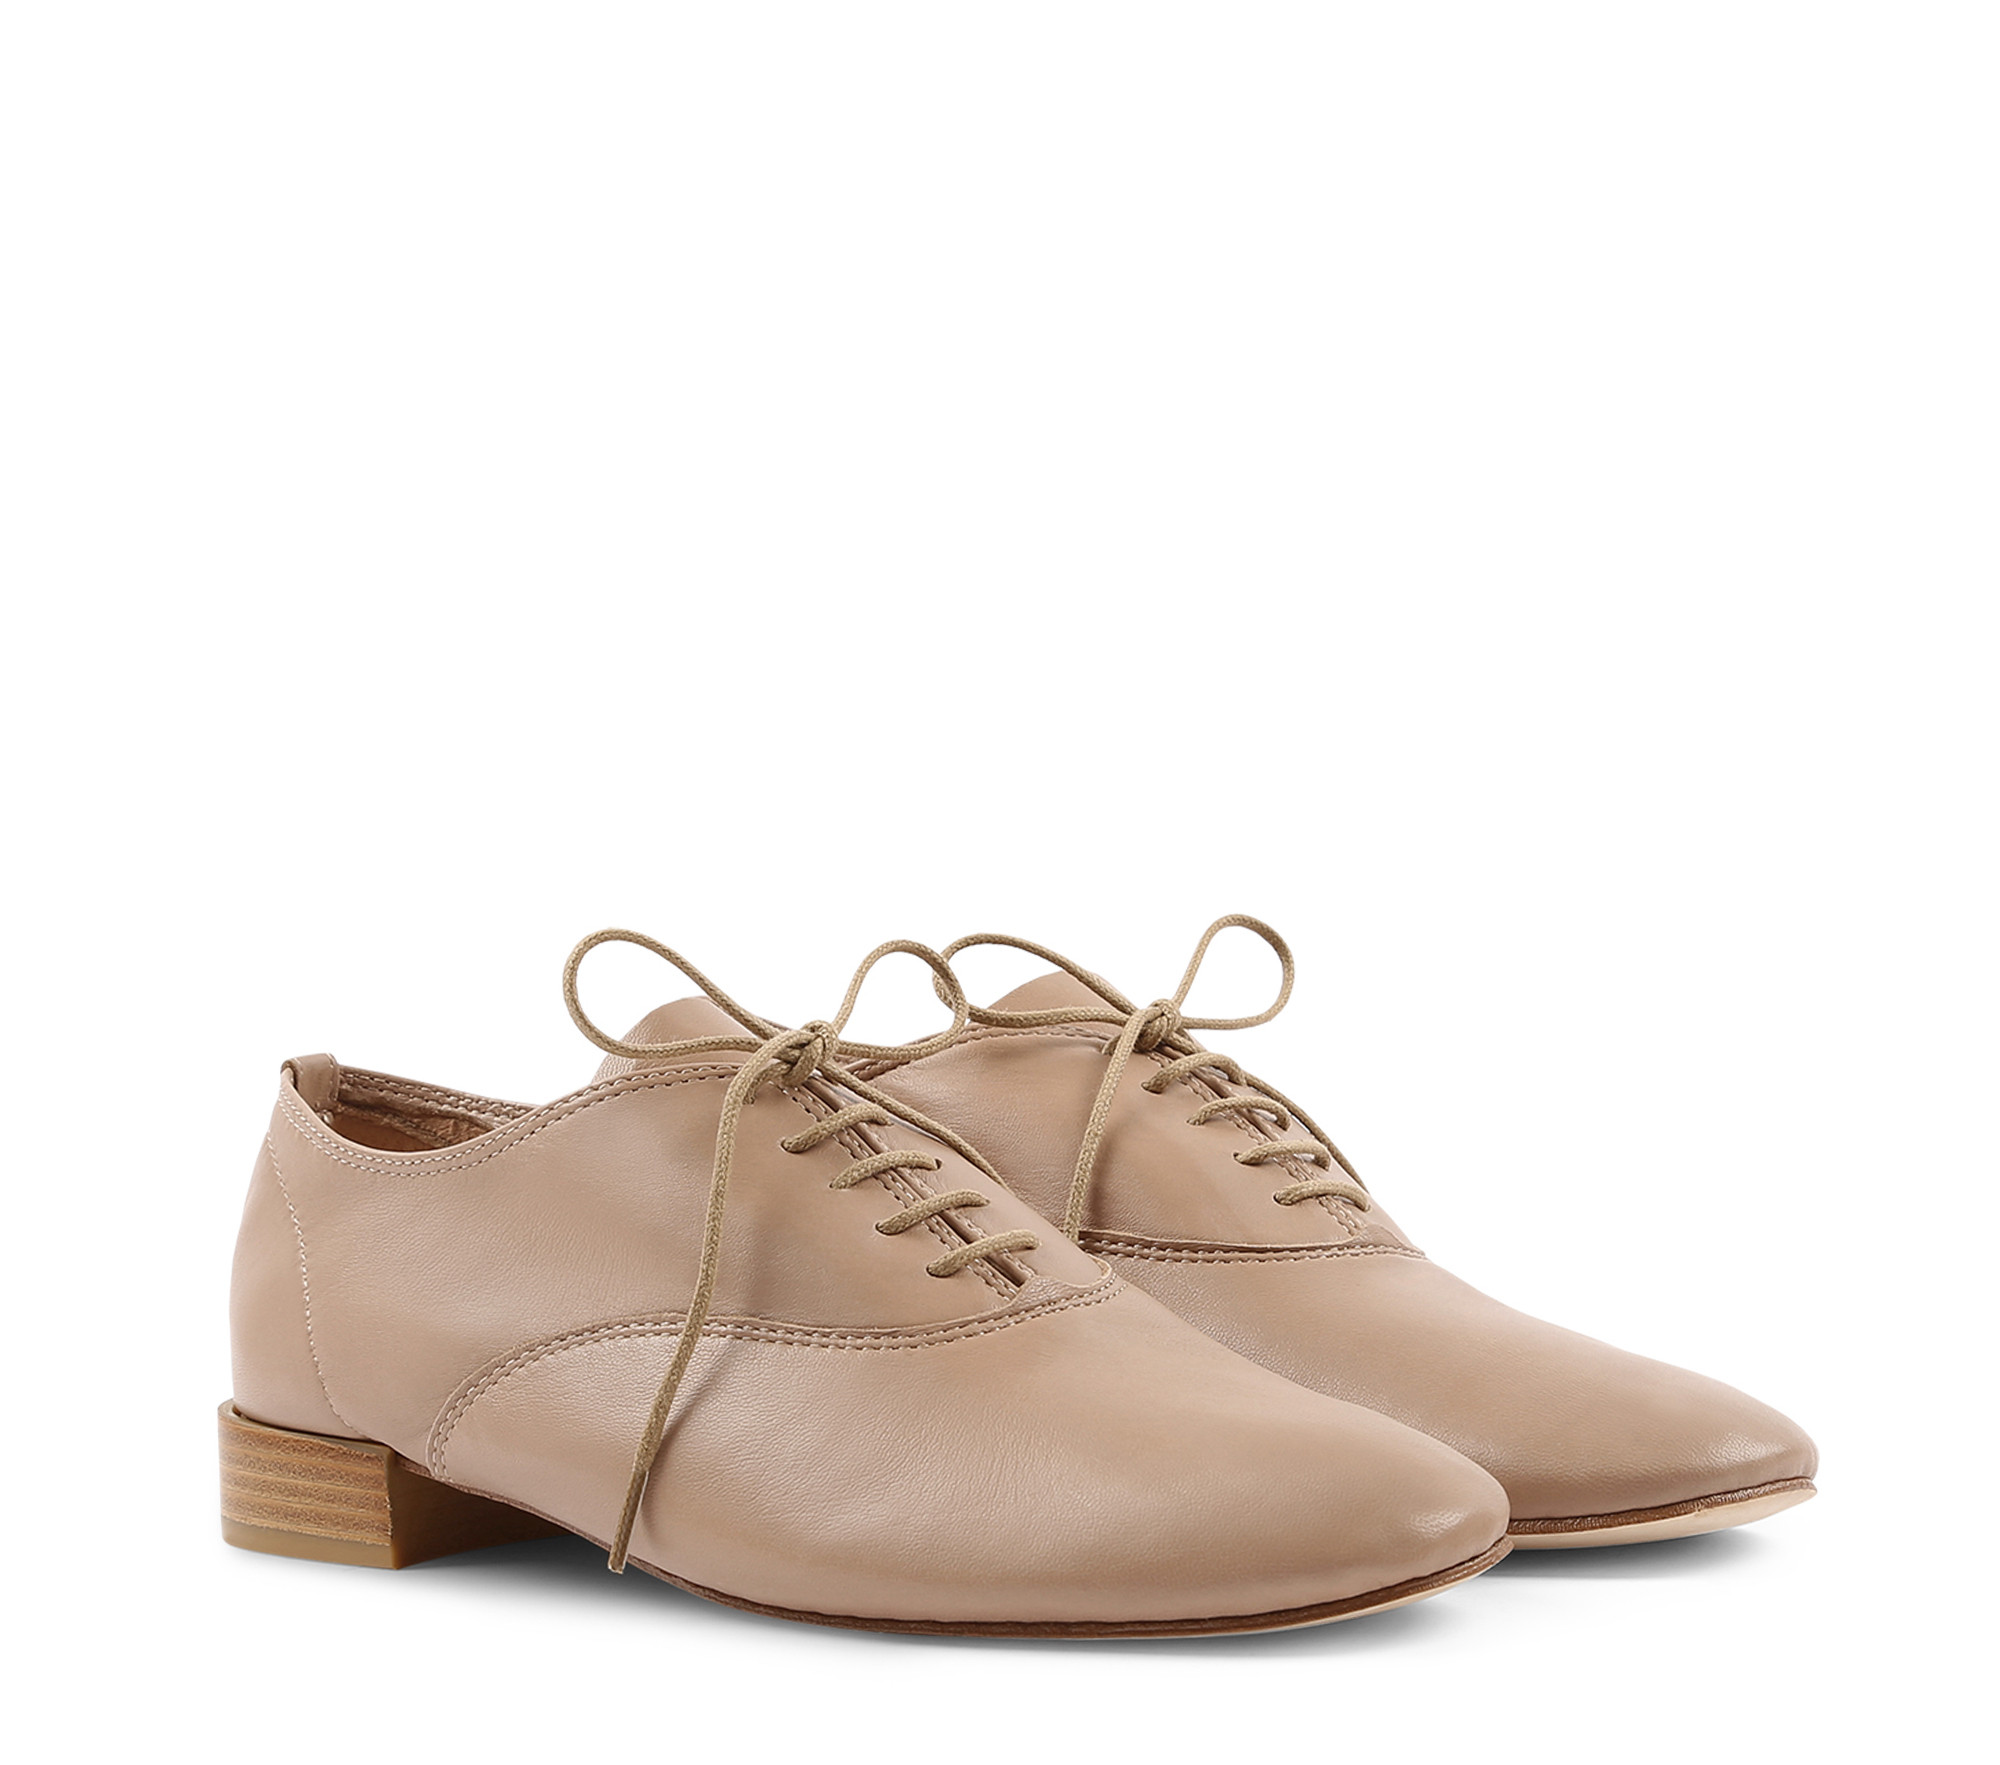 Zizi oxford shoes